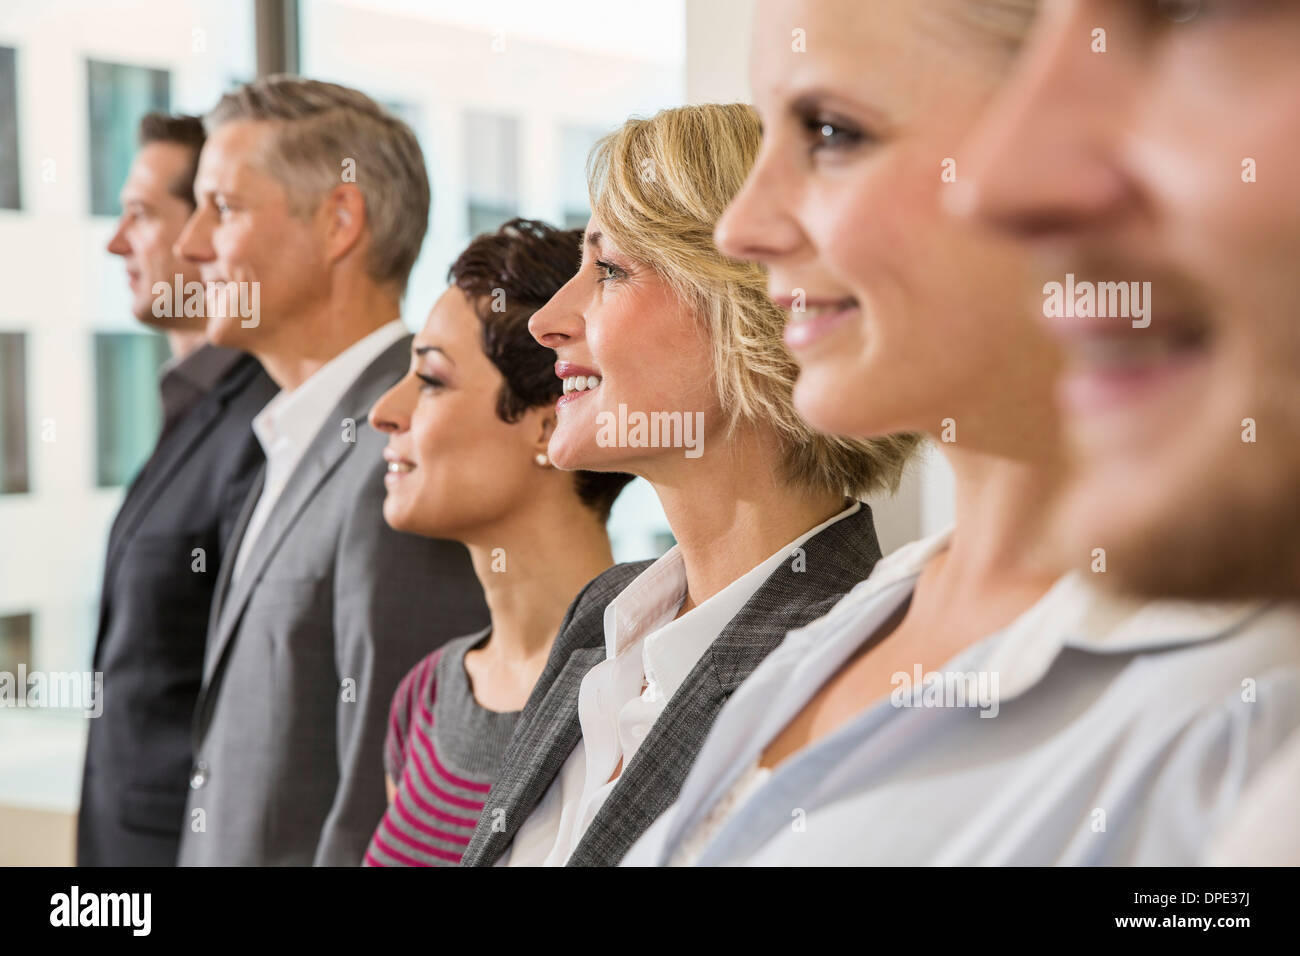 Businesspeople in a row - Stock Image